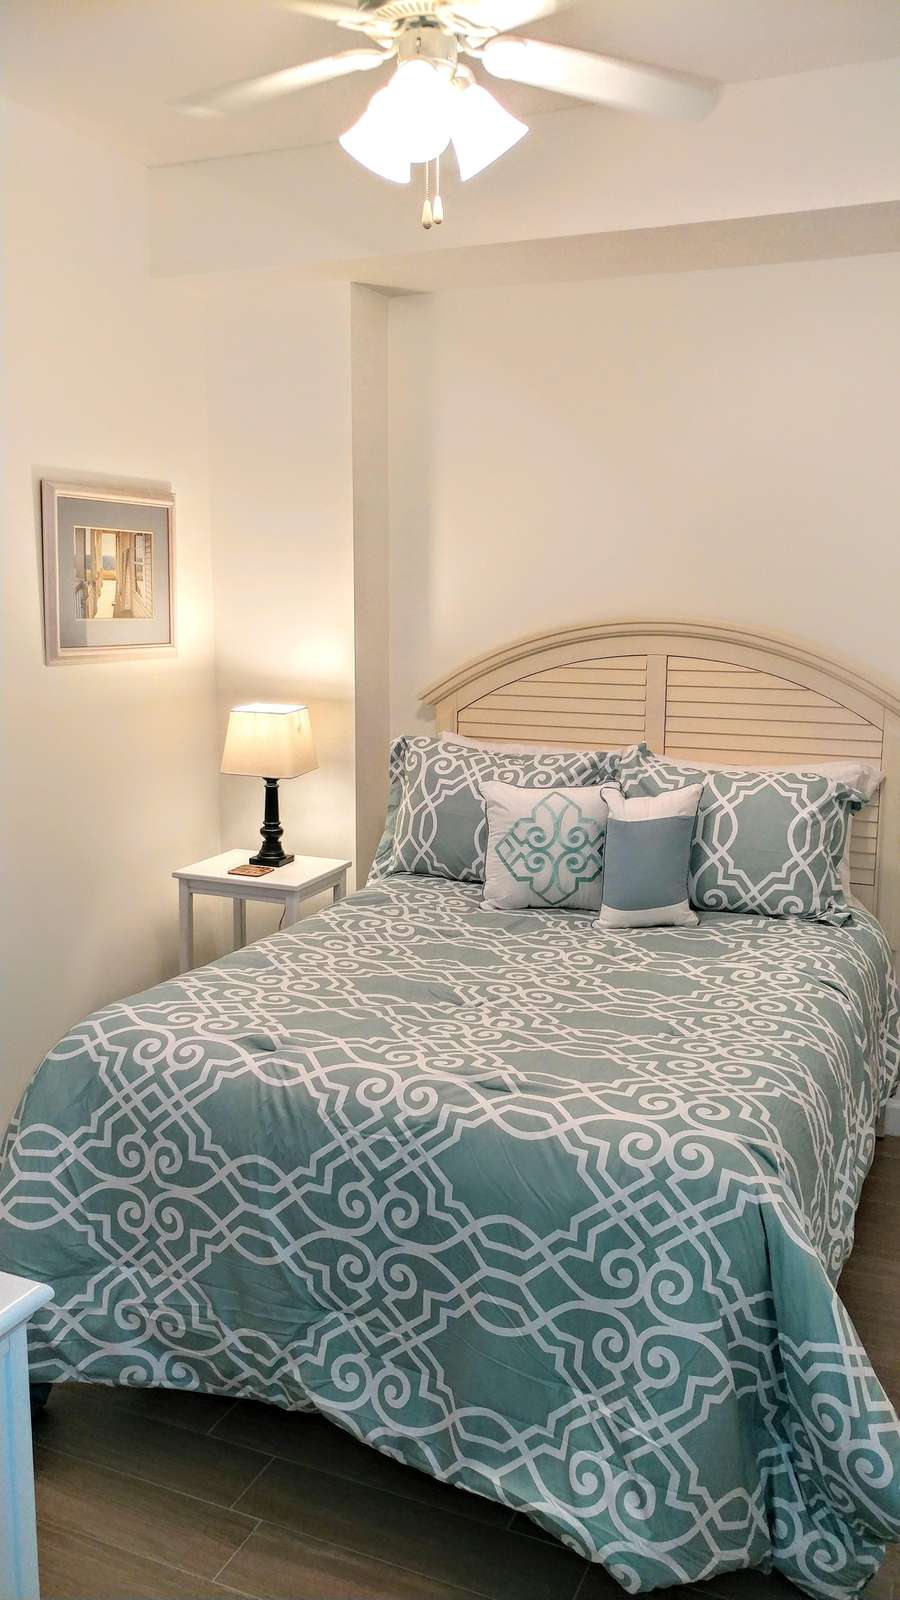 3rd Guest bedroom with full